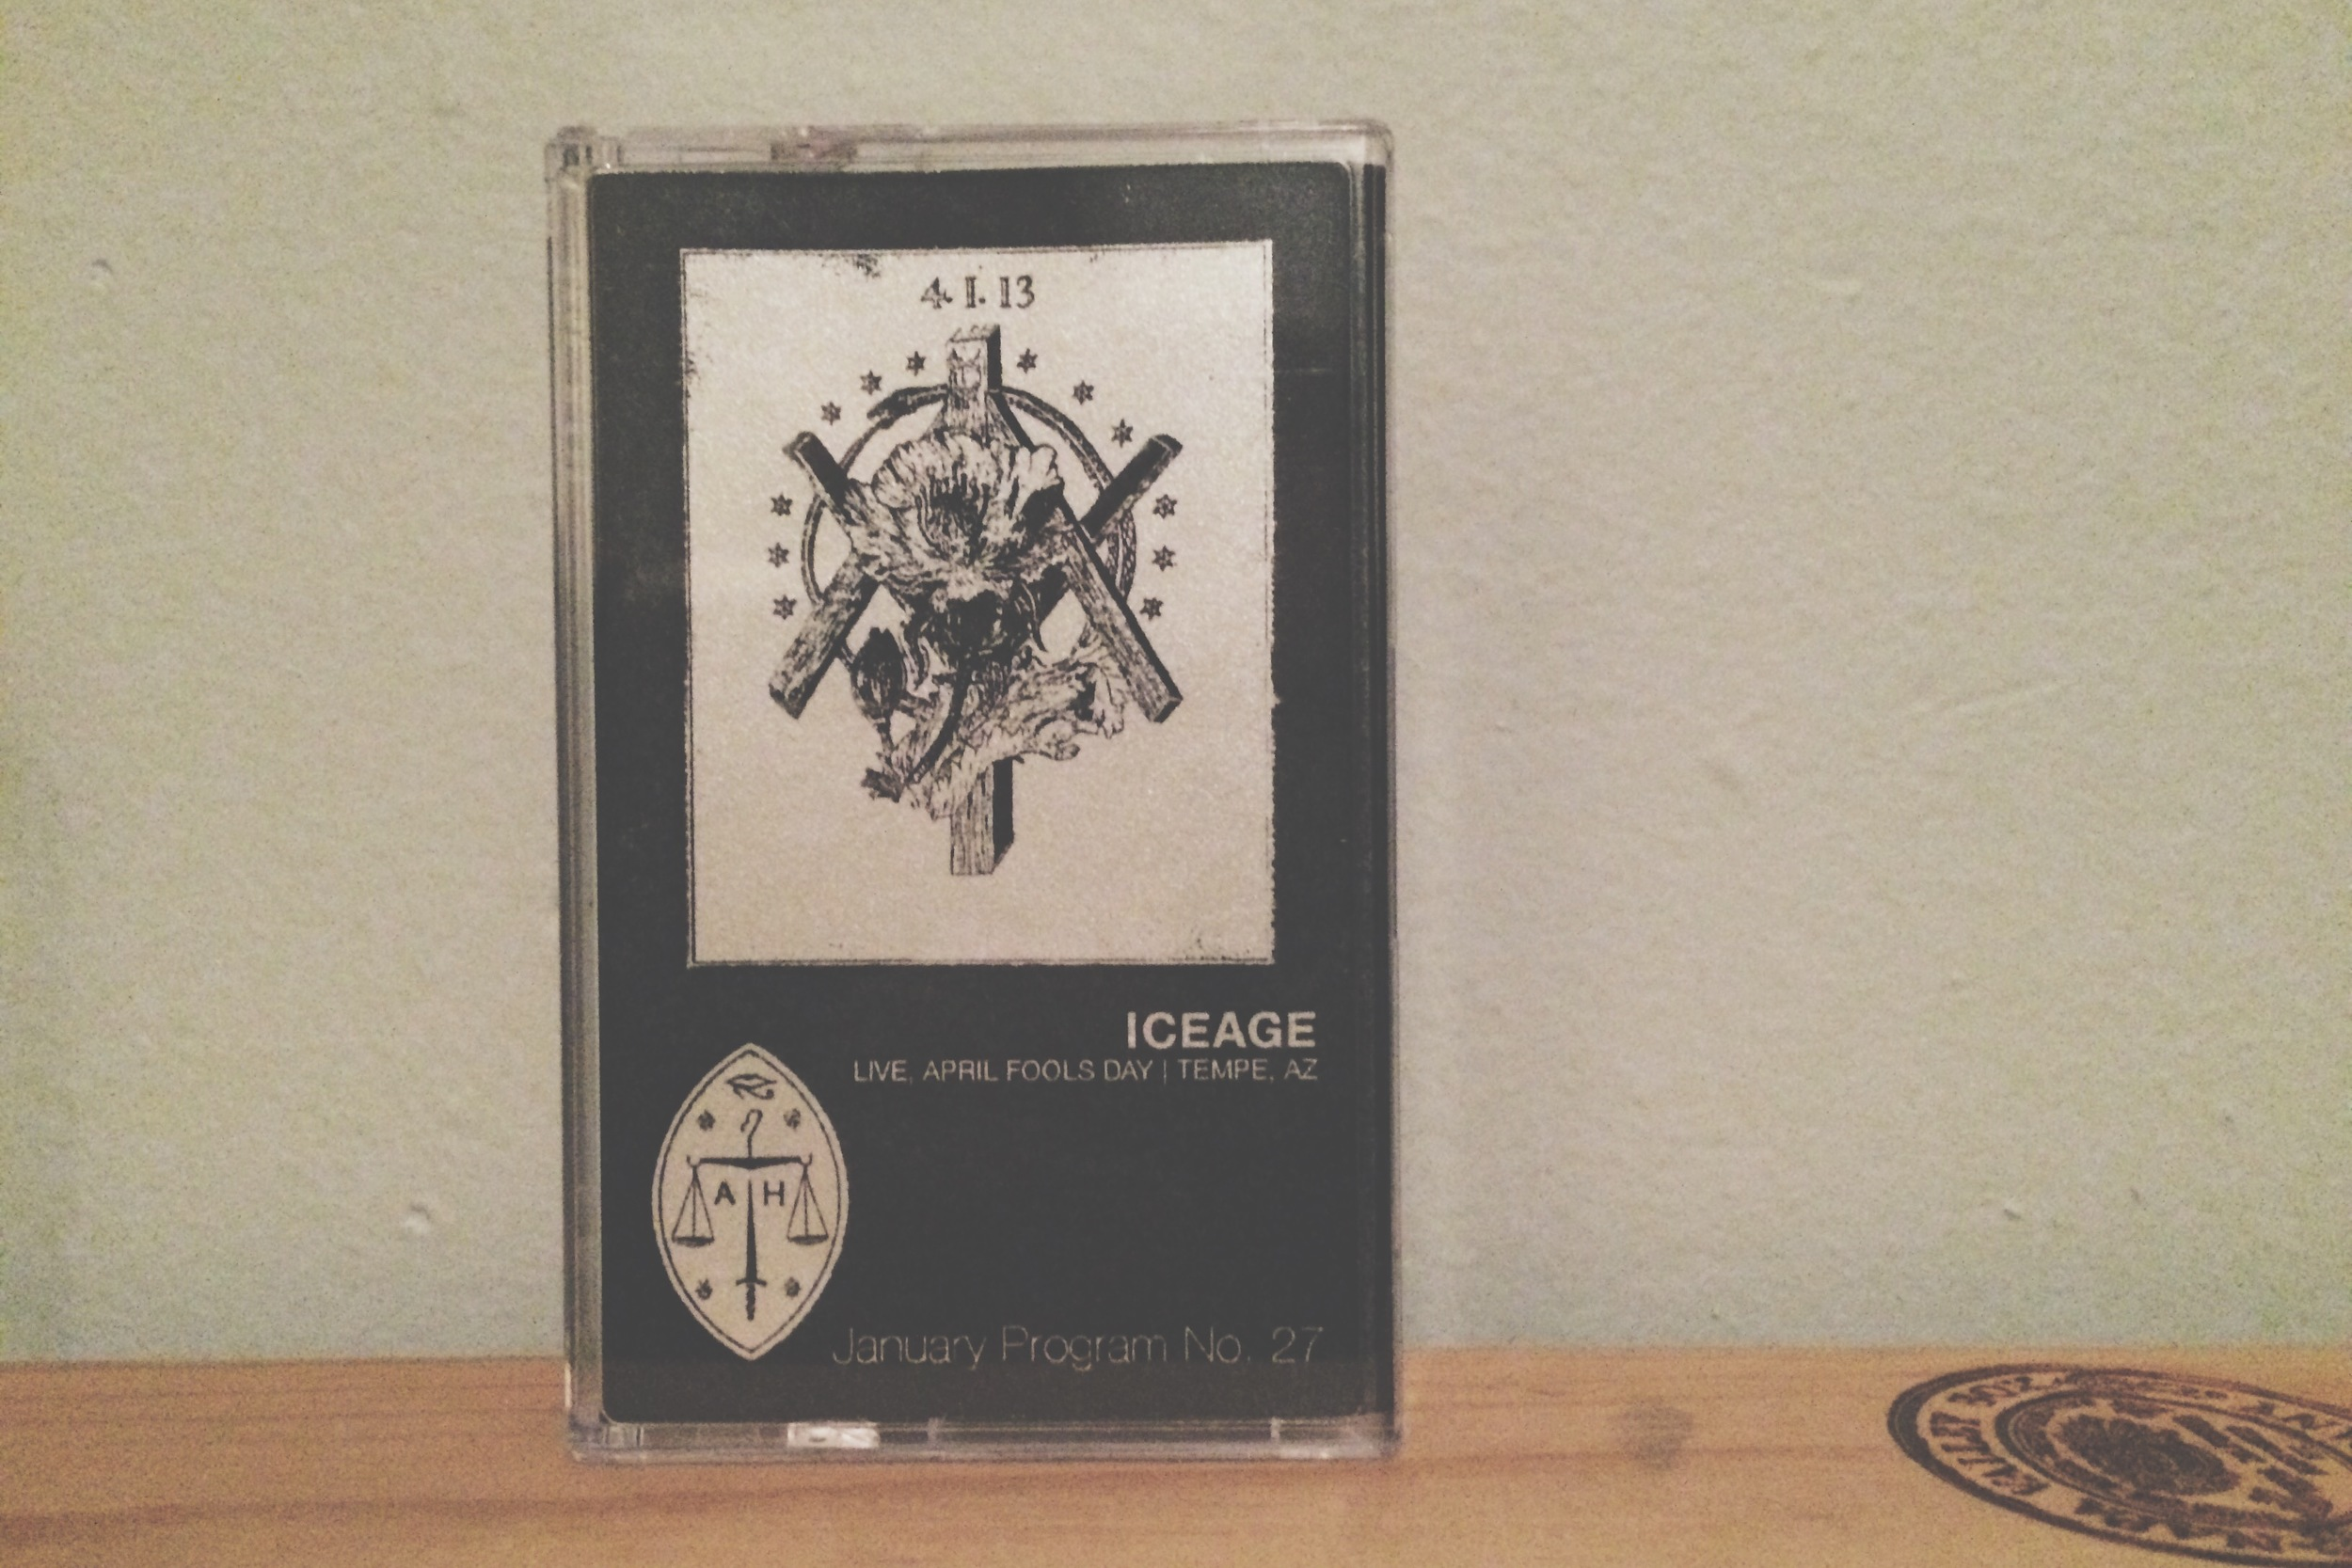 1 05. Iceage - Live in Tempe.jpg